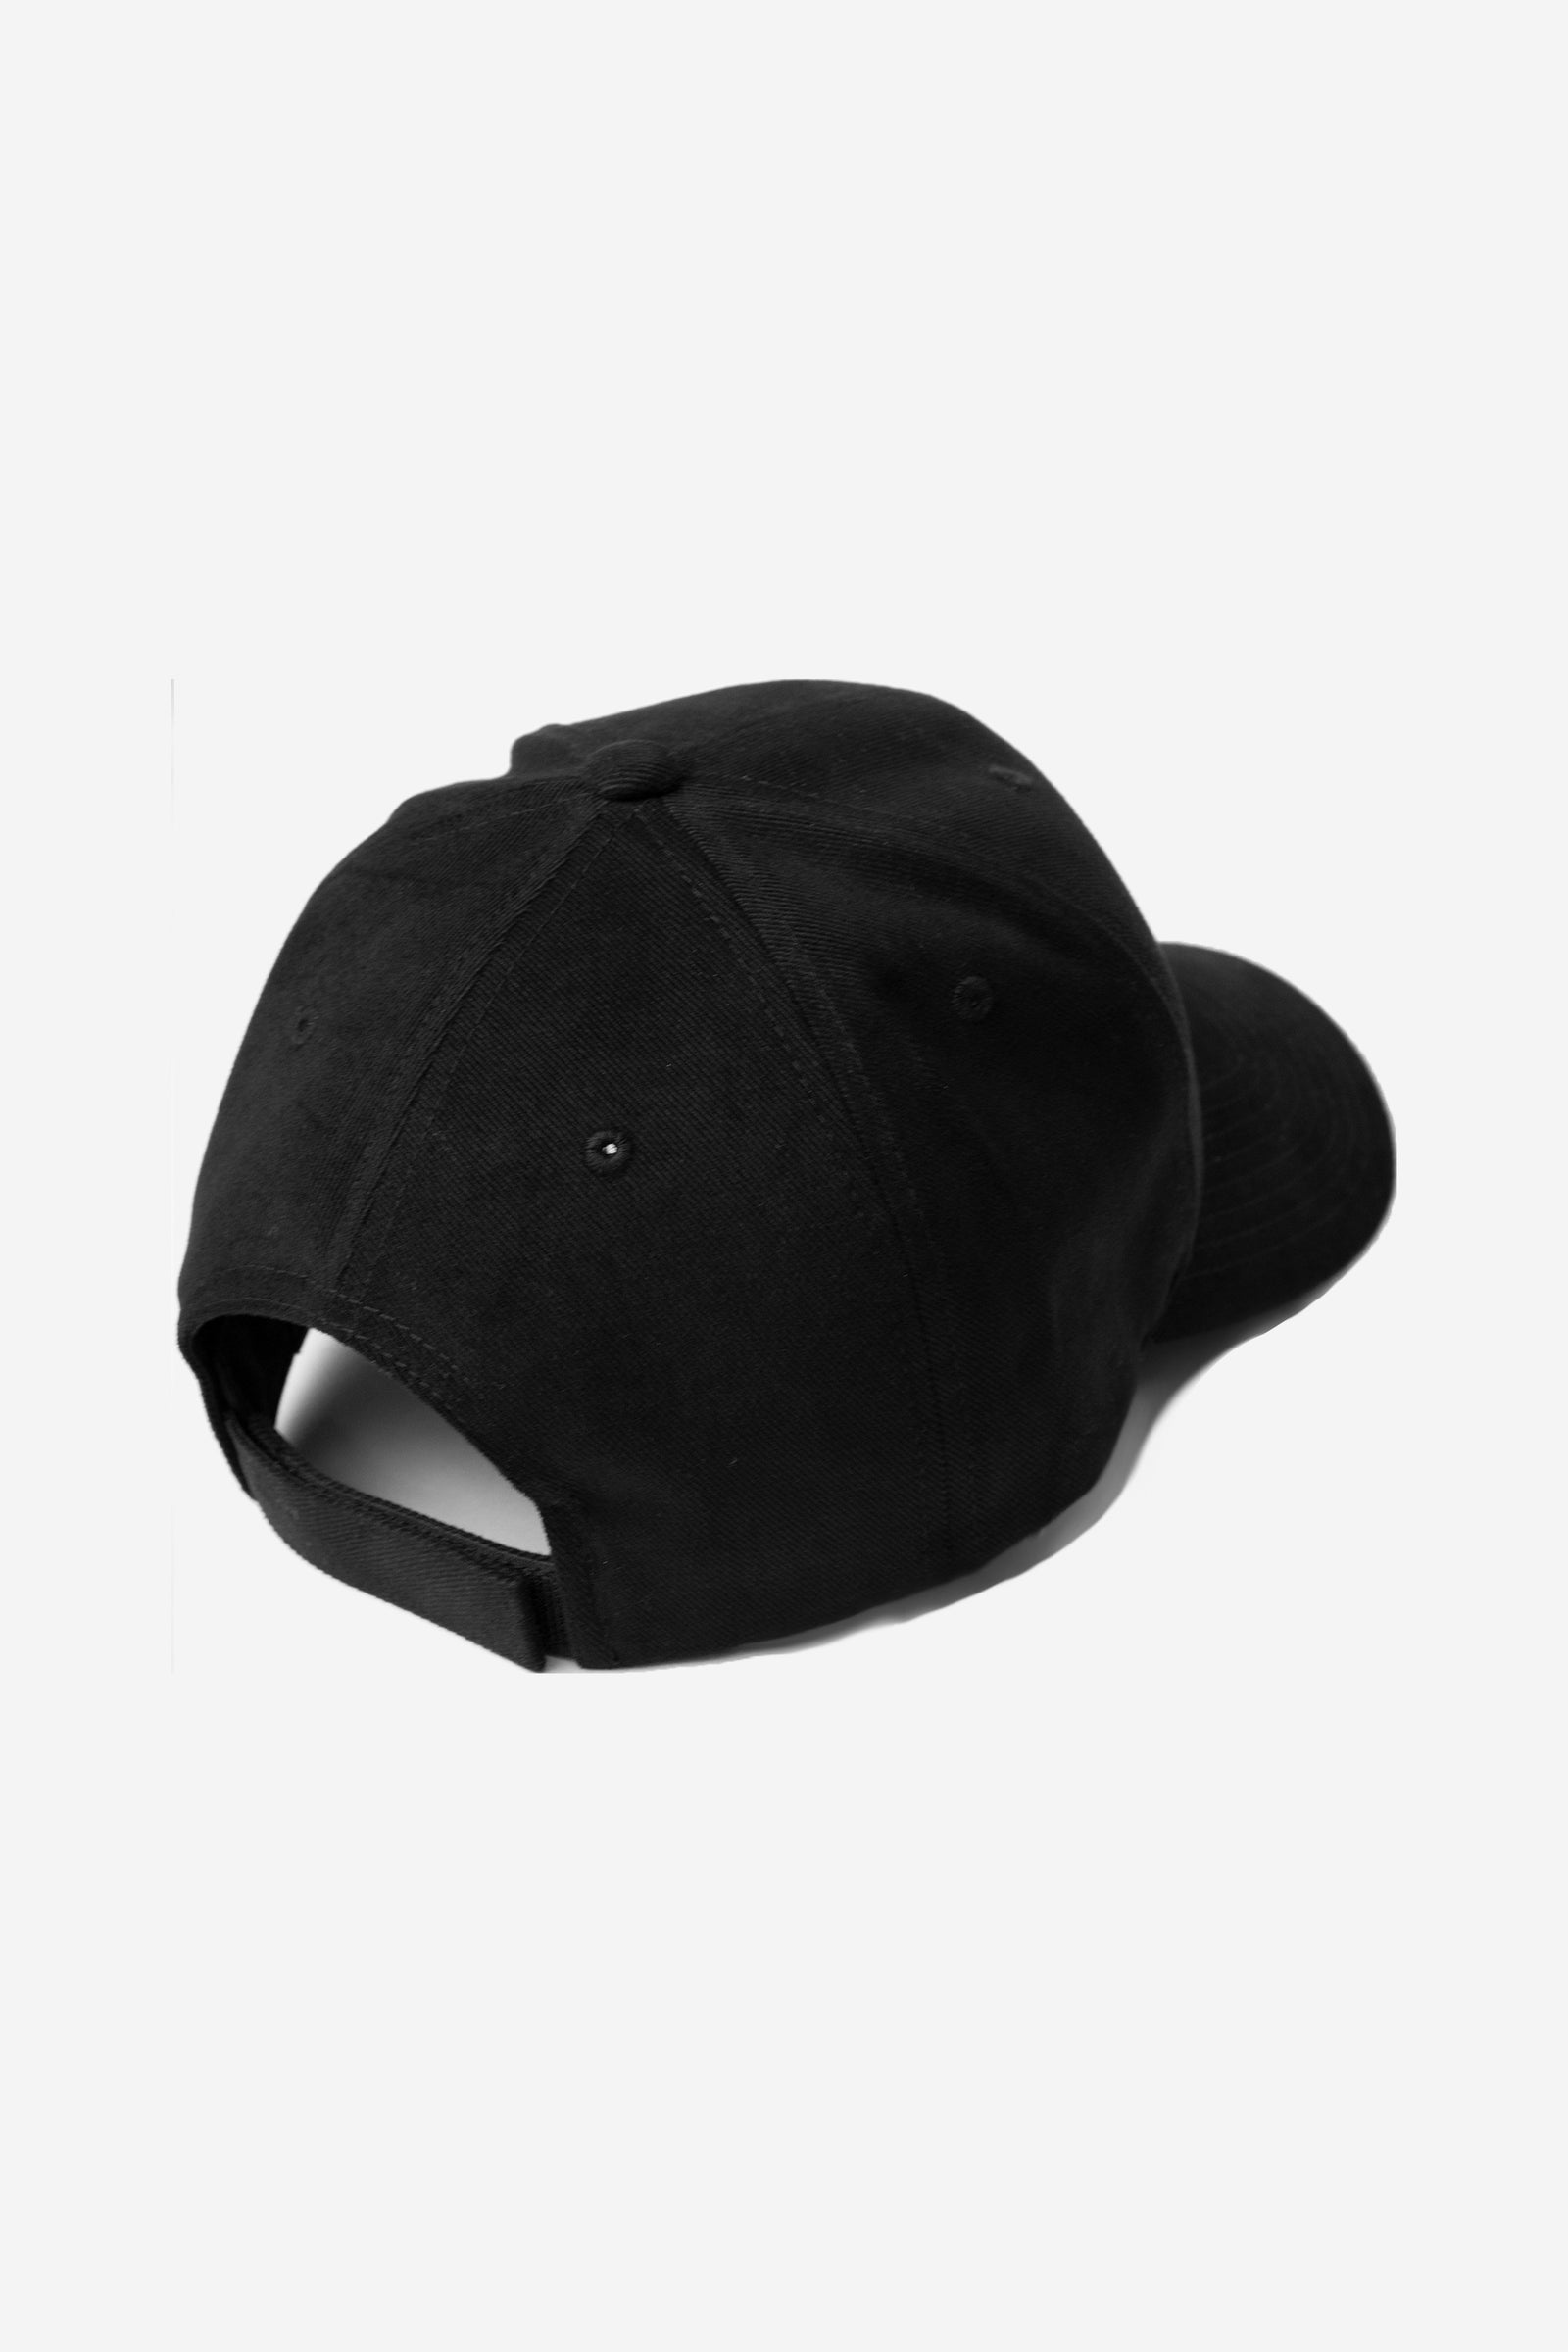 Script Strap Back Hat - Black - ENTRPRNR® | The Entrepreneur's Clothing Brand. | Stagnancy is the Enemy. Action is King.